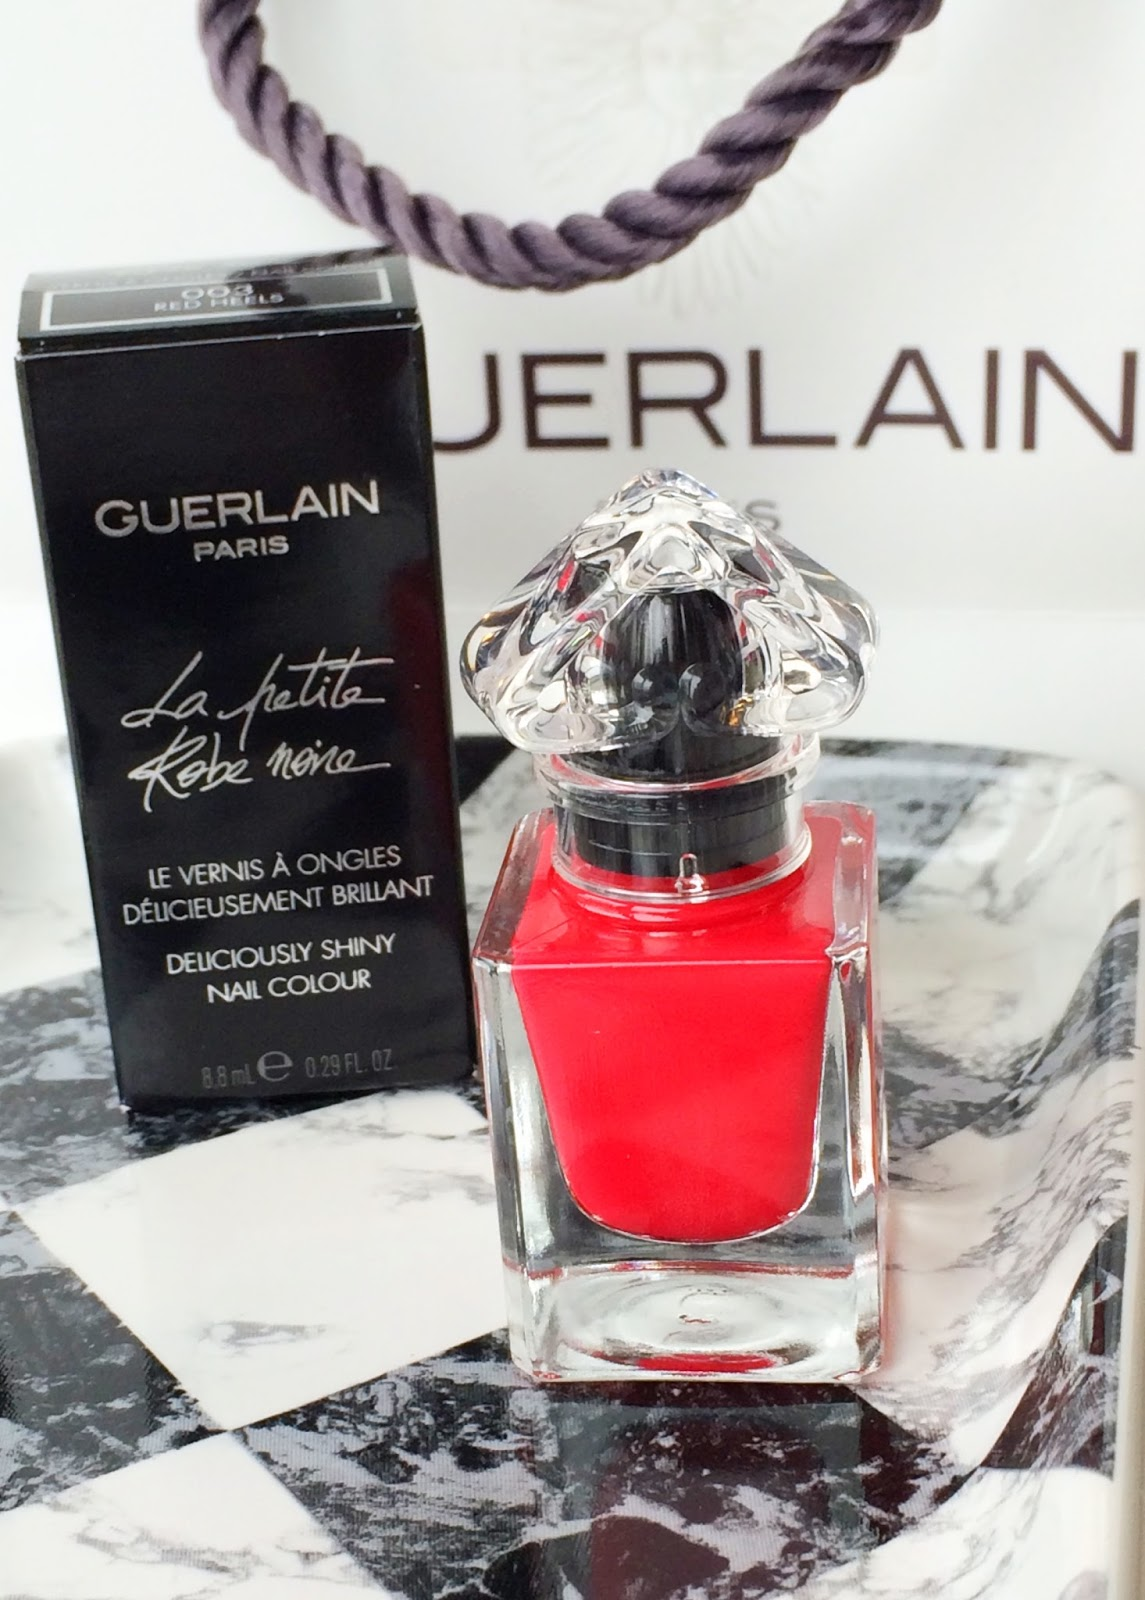 Guerlain La Petite Robe Noire Nail Polish In Red Heels Beautylymin Is A High End Brand That I Always Associate With Luxury Sophistication Have Only Tried Small Number Of Products From Them So When Debenhams